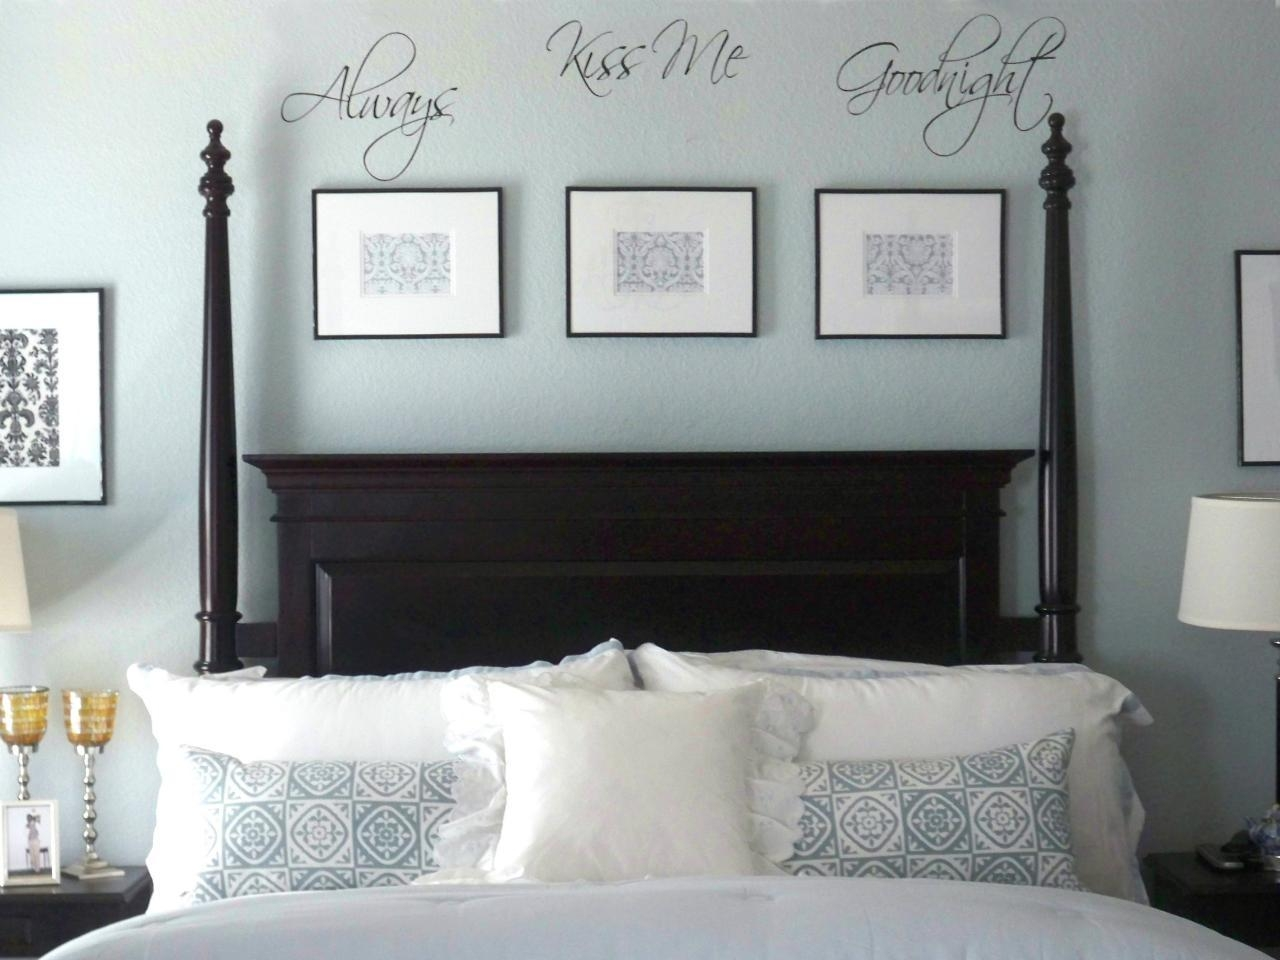 Uncategorized Pictures Over Bed wall art over bed choice image home decoration ideas 20 collection of the 10 for decorating over